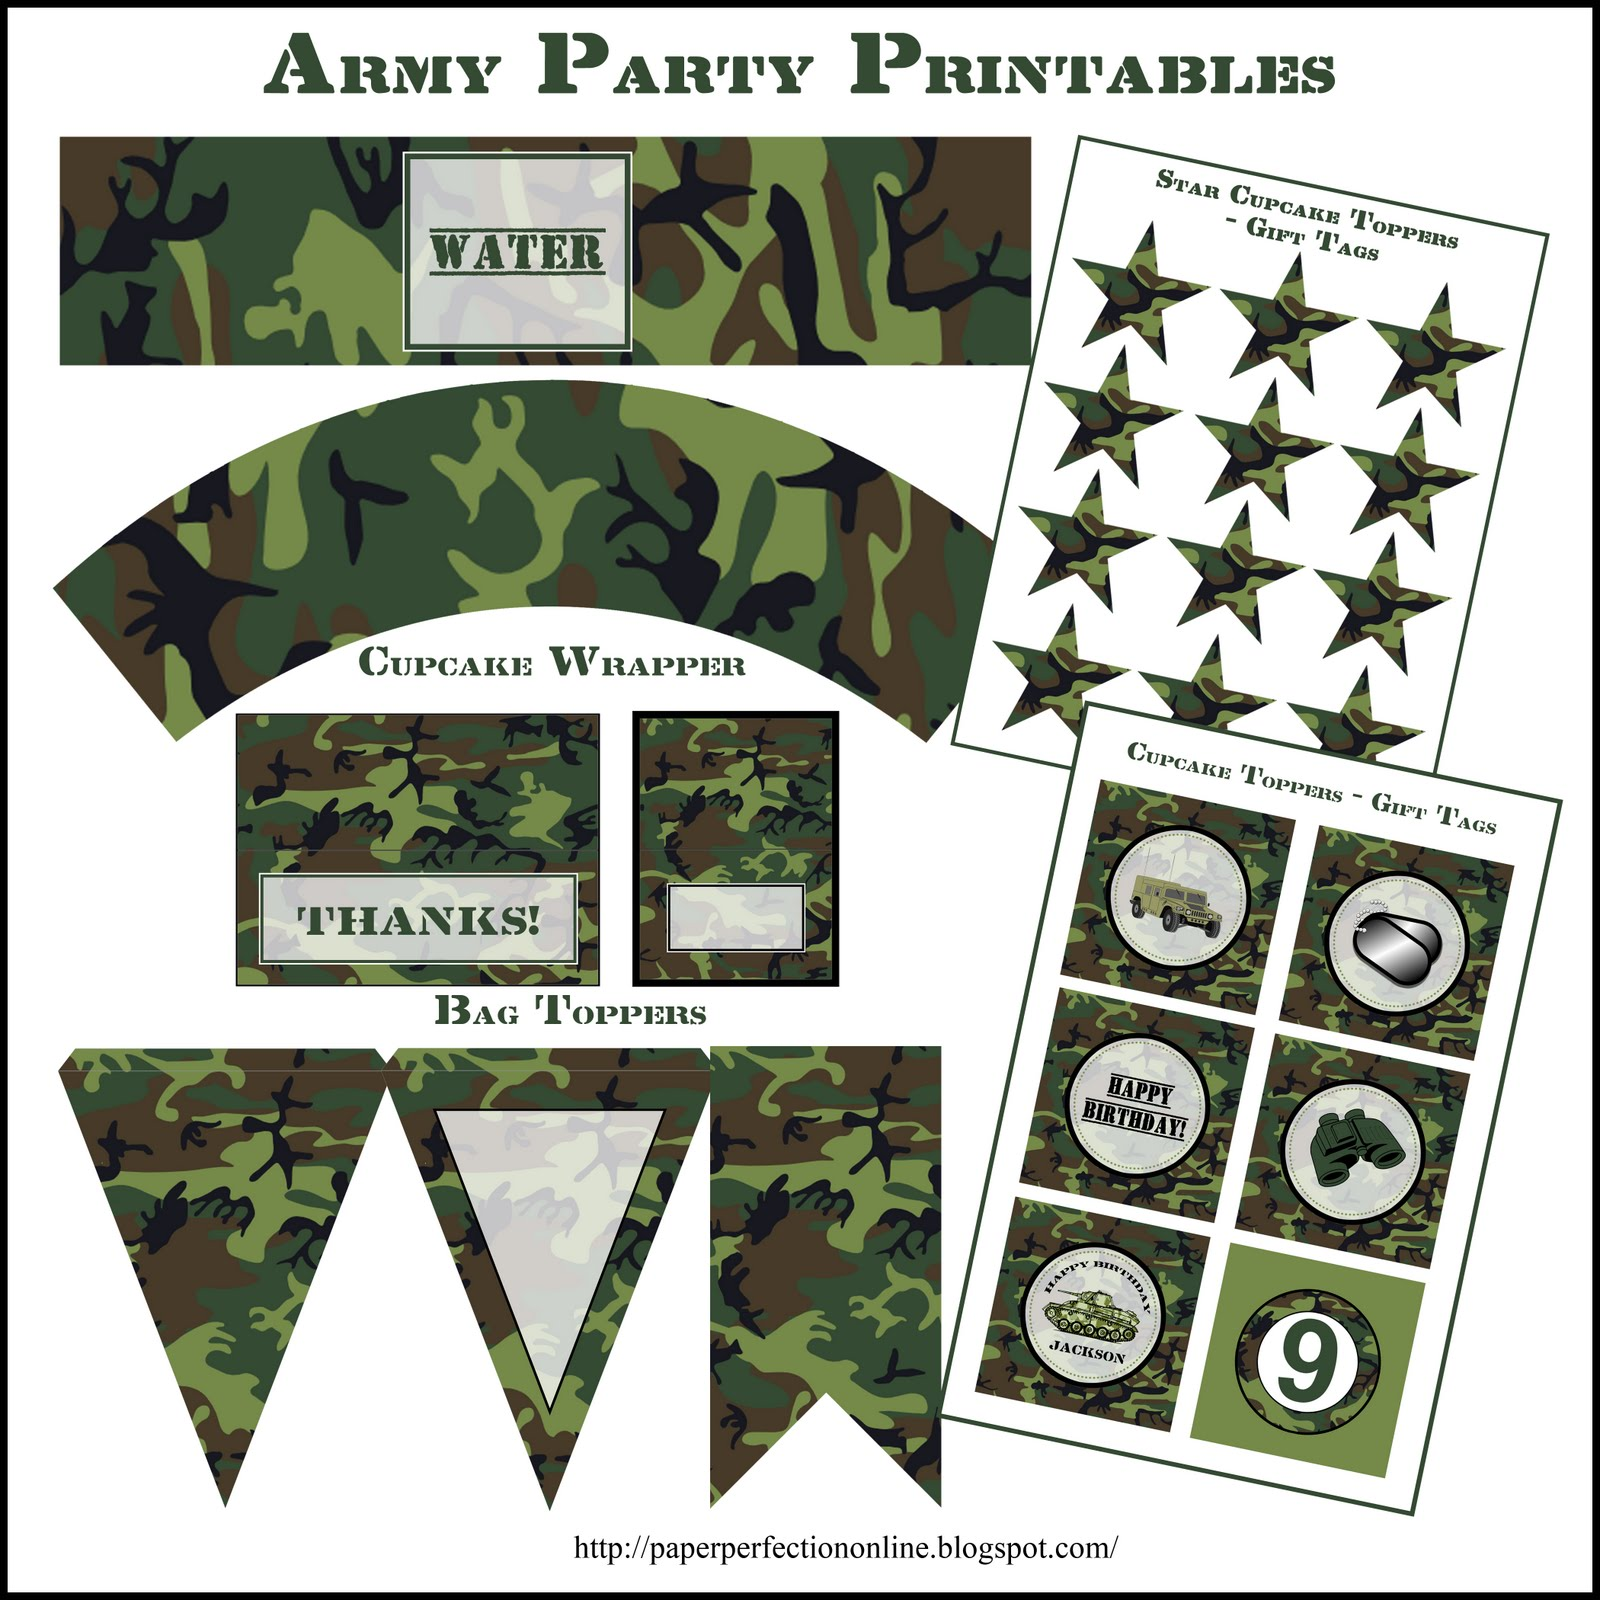 5 Images of Army Party Printables